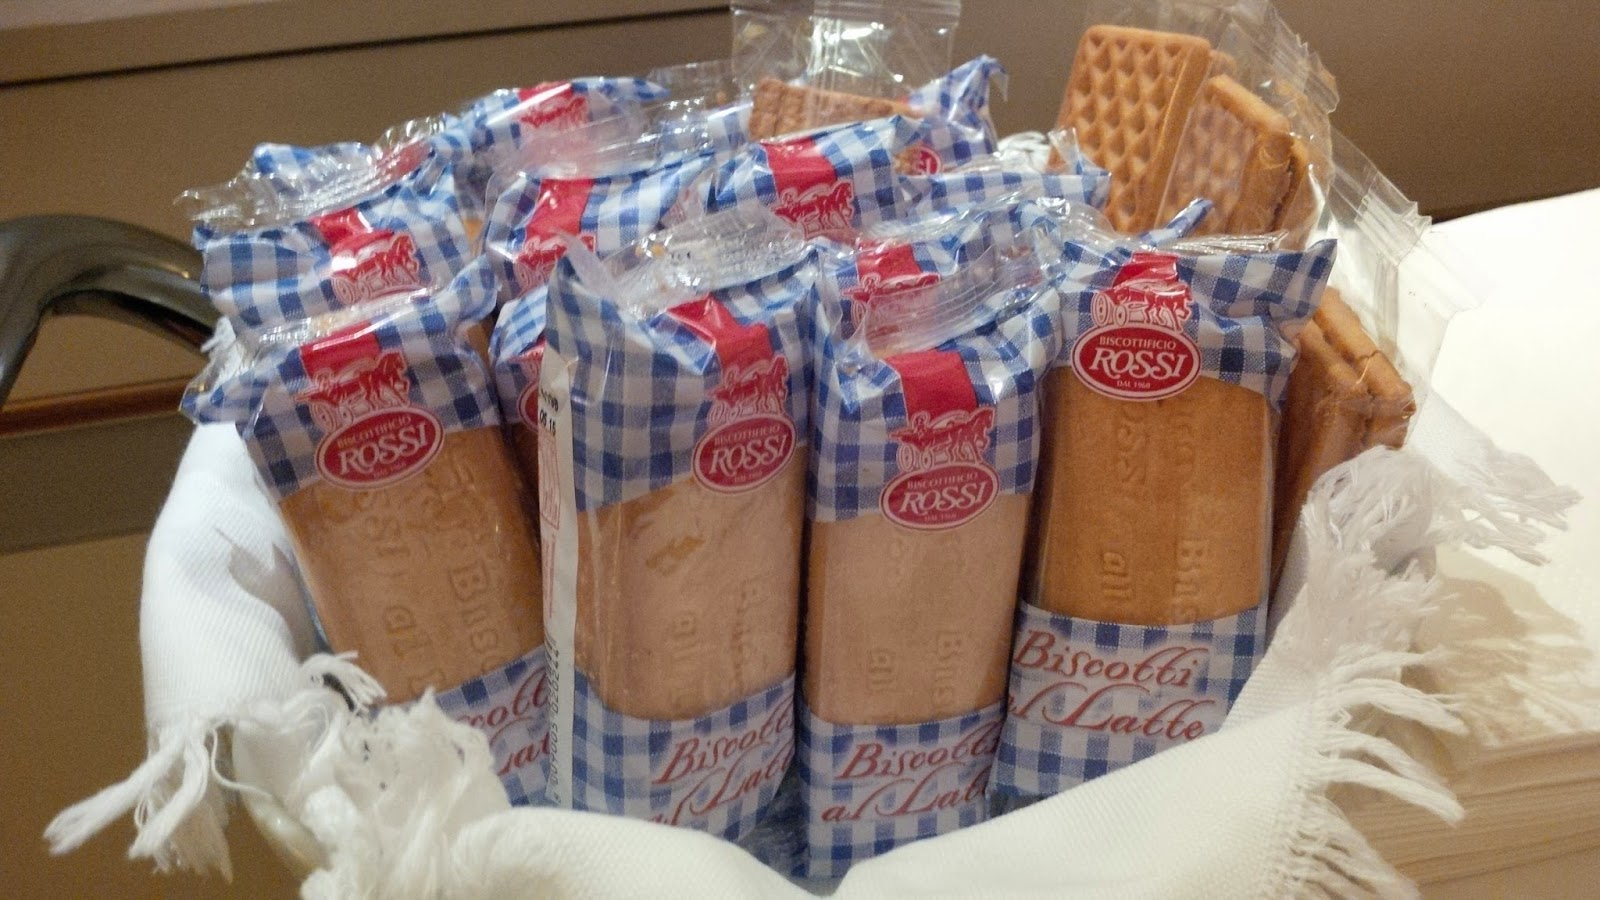 Biscuits Rossi in Hotel Accademia in Verona